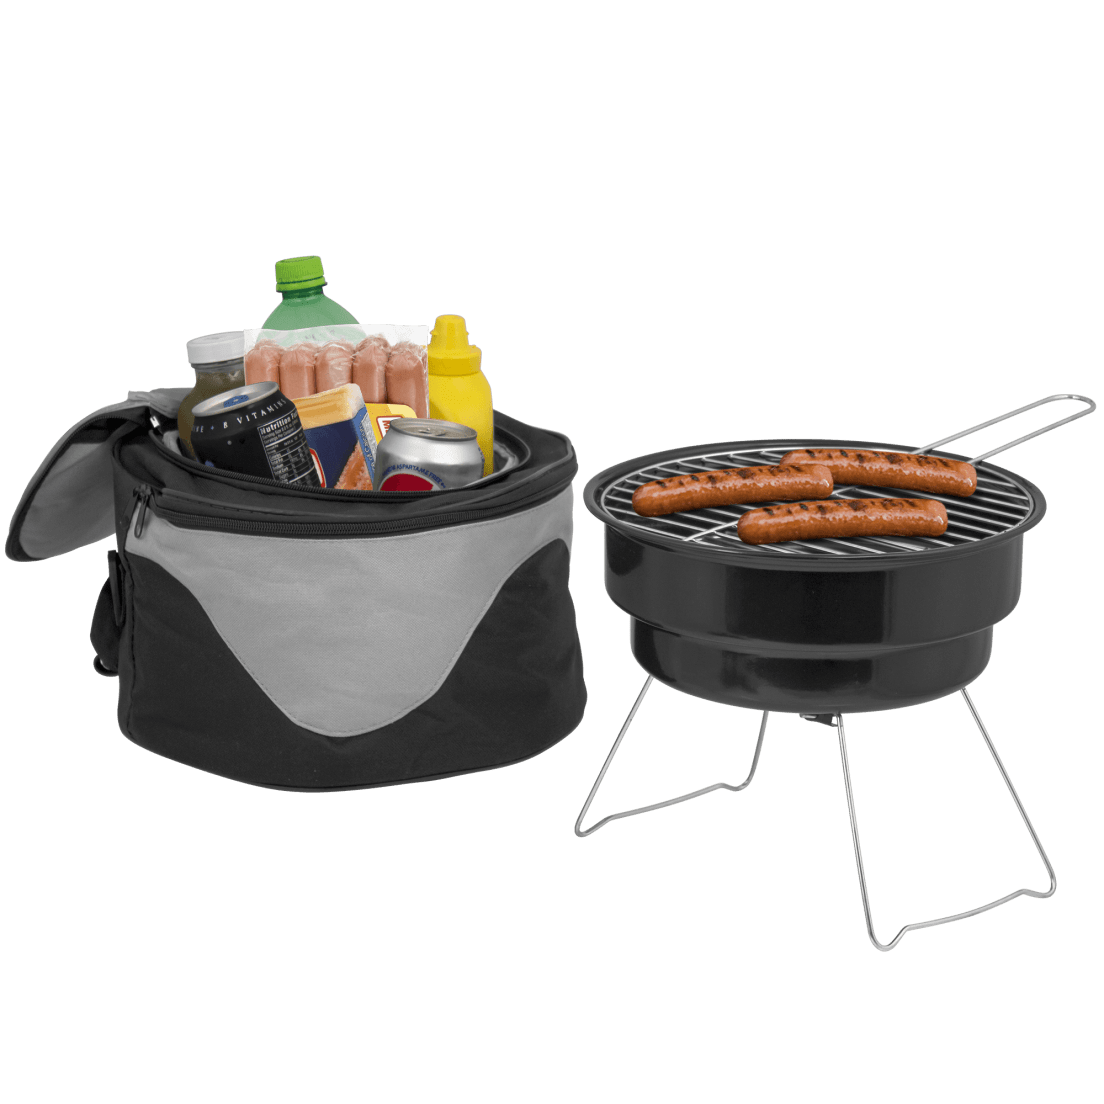 Small Barbecue Grill The Big Backyard Portable Barbecue Grill Cooler Bag